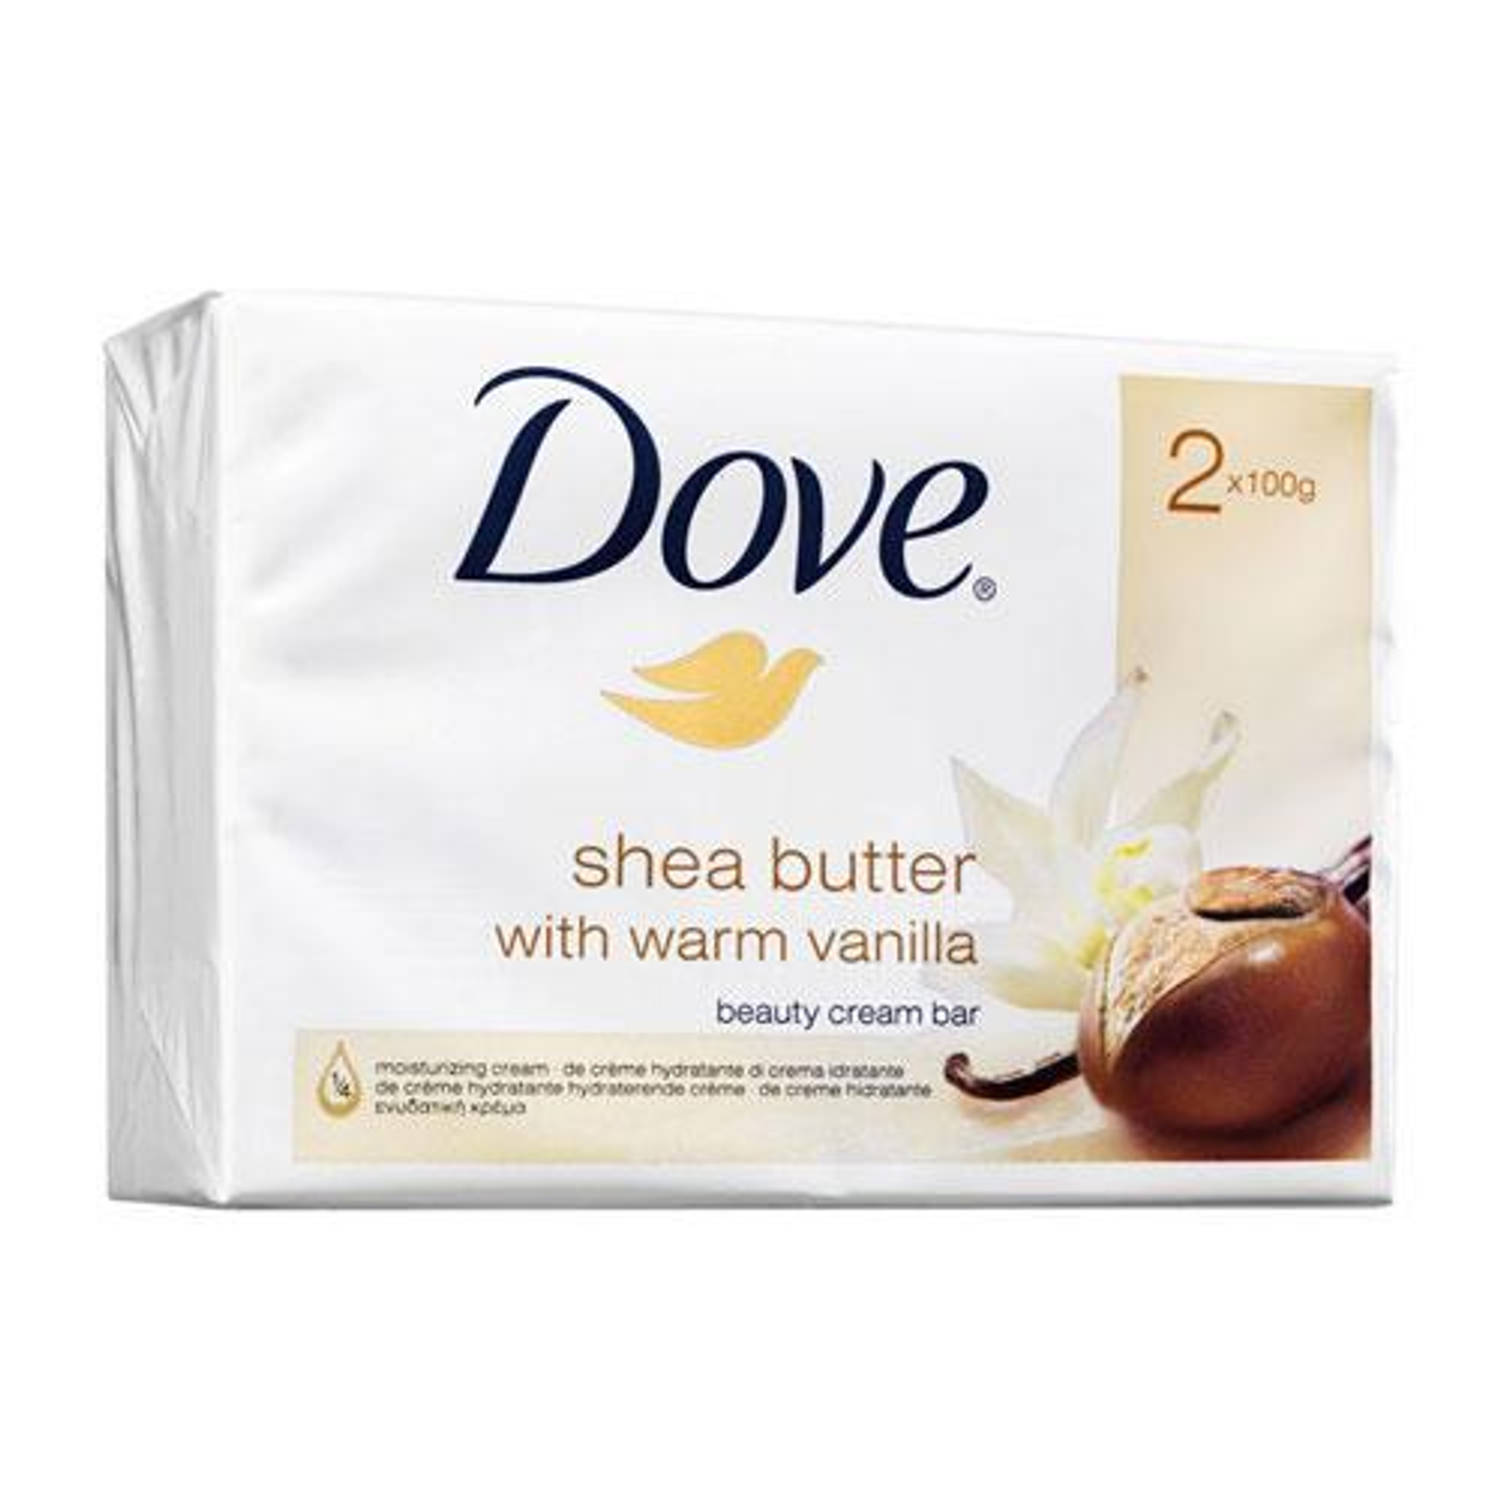 Dove Shea Butter Wastablet 2x100g